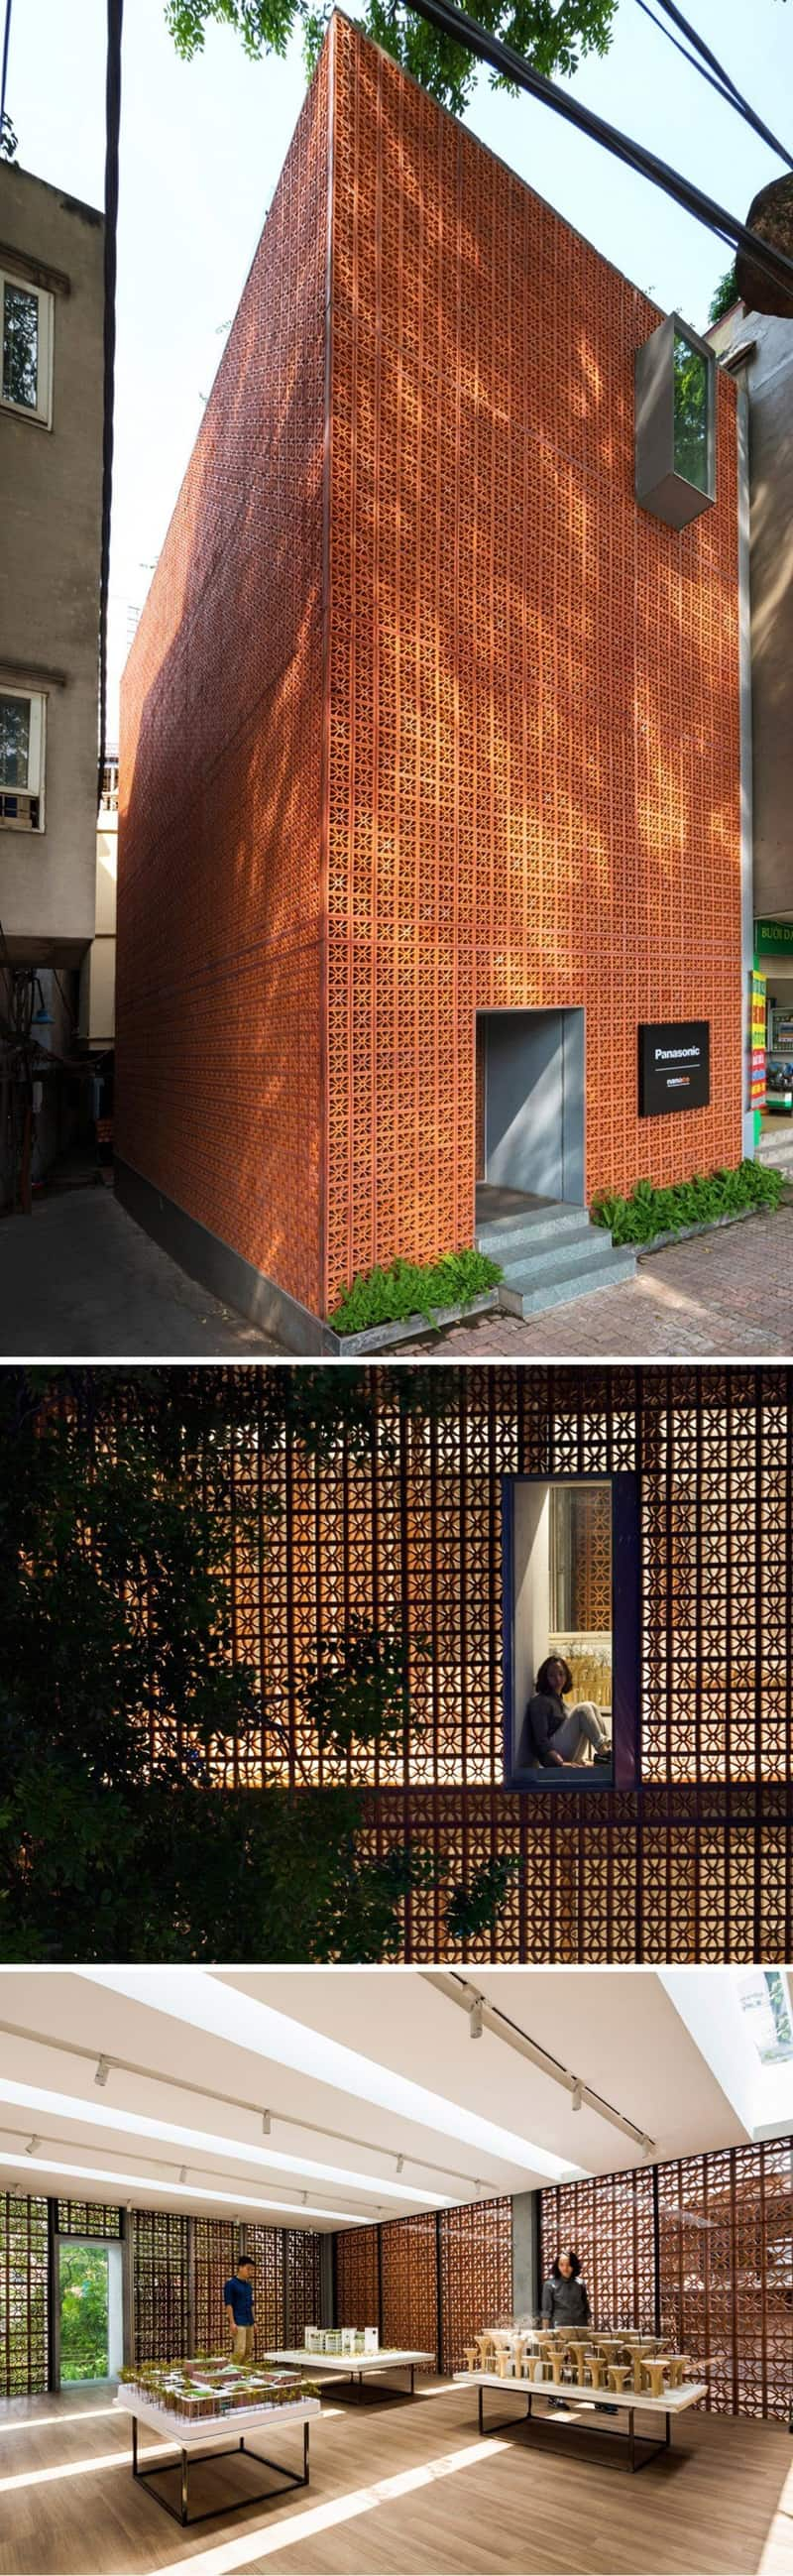 40 Spectacular Brick Wall Ideas You Can Use for Any House on Brick Wall Decorating Ideas  id=28840